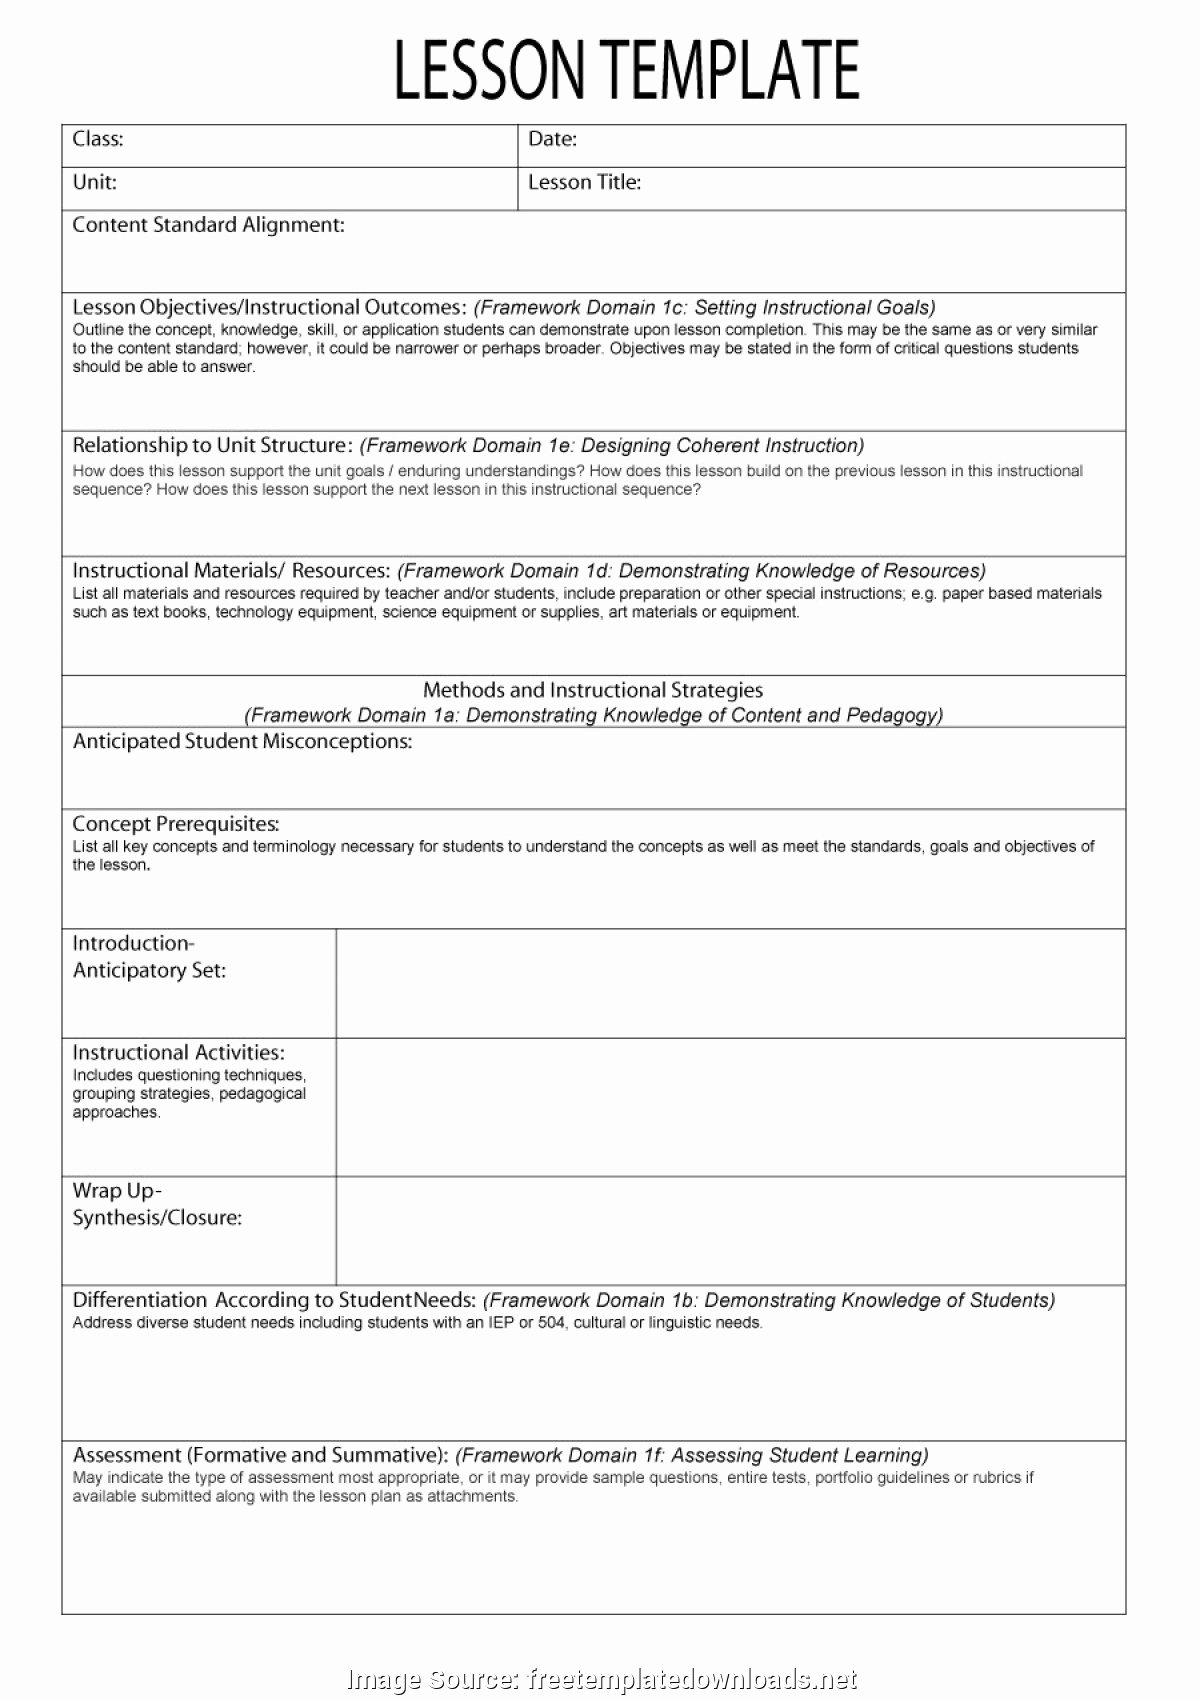 Lesson Plan Template Common Core Fresh Regular Free Science Lesson Plans 44 Free Lesson Plan Templates [ Mon Core Preschool Weekl